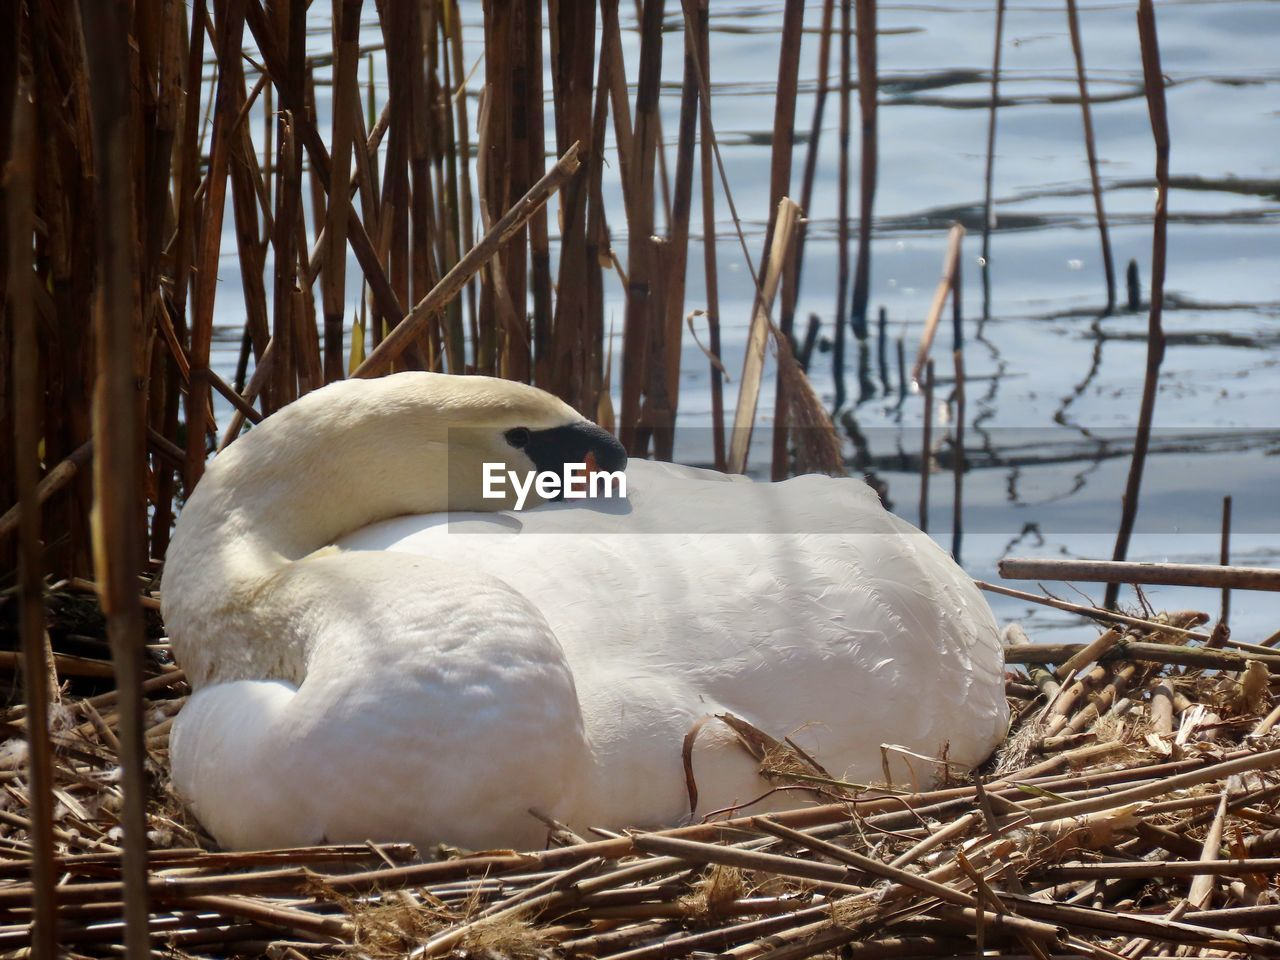 bird, animal themes, animal, vertebrate, animal wildlife, animals in the wild, one animal, nature, animal nest, water, day, white color, no people, swan, close-up, lake, water bird, plant, zoology, bird nest, outdoors, beak, animal family